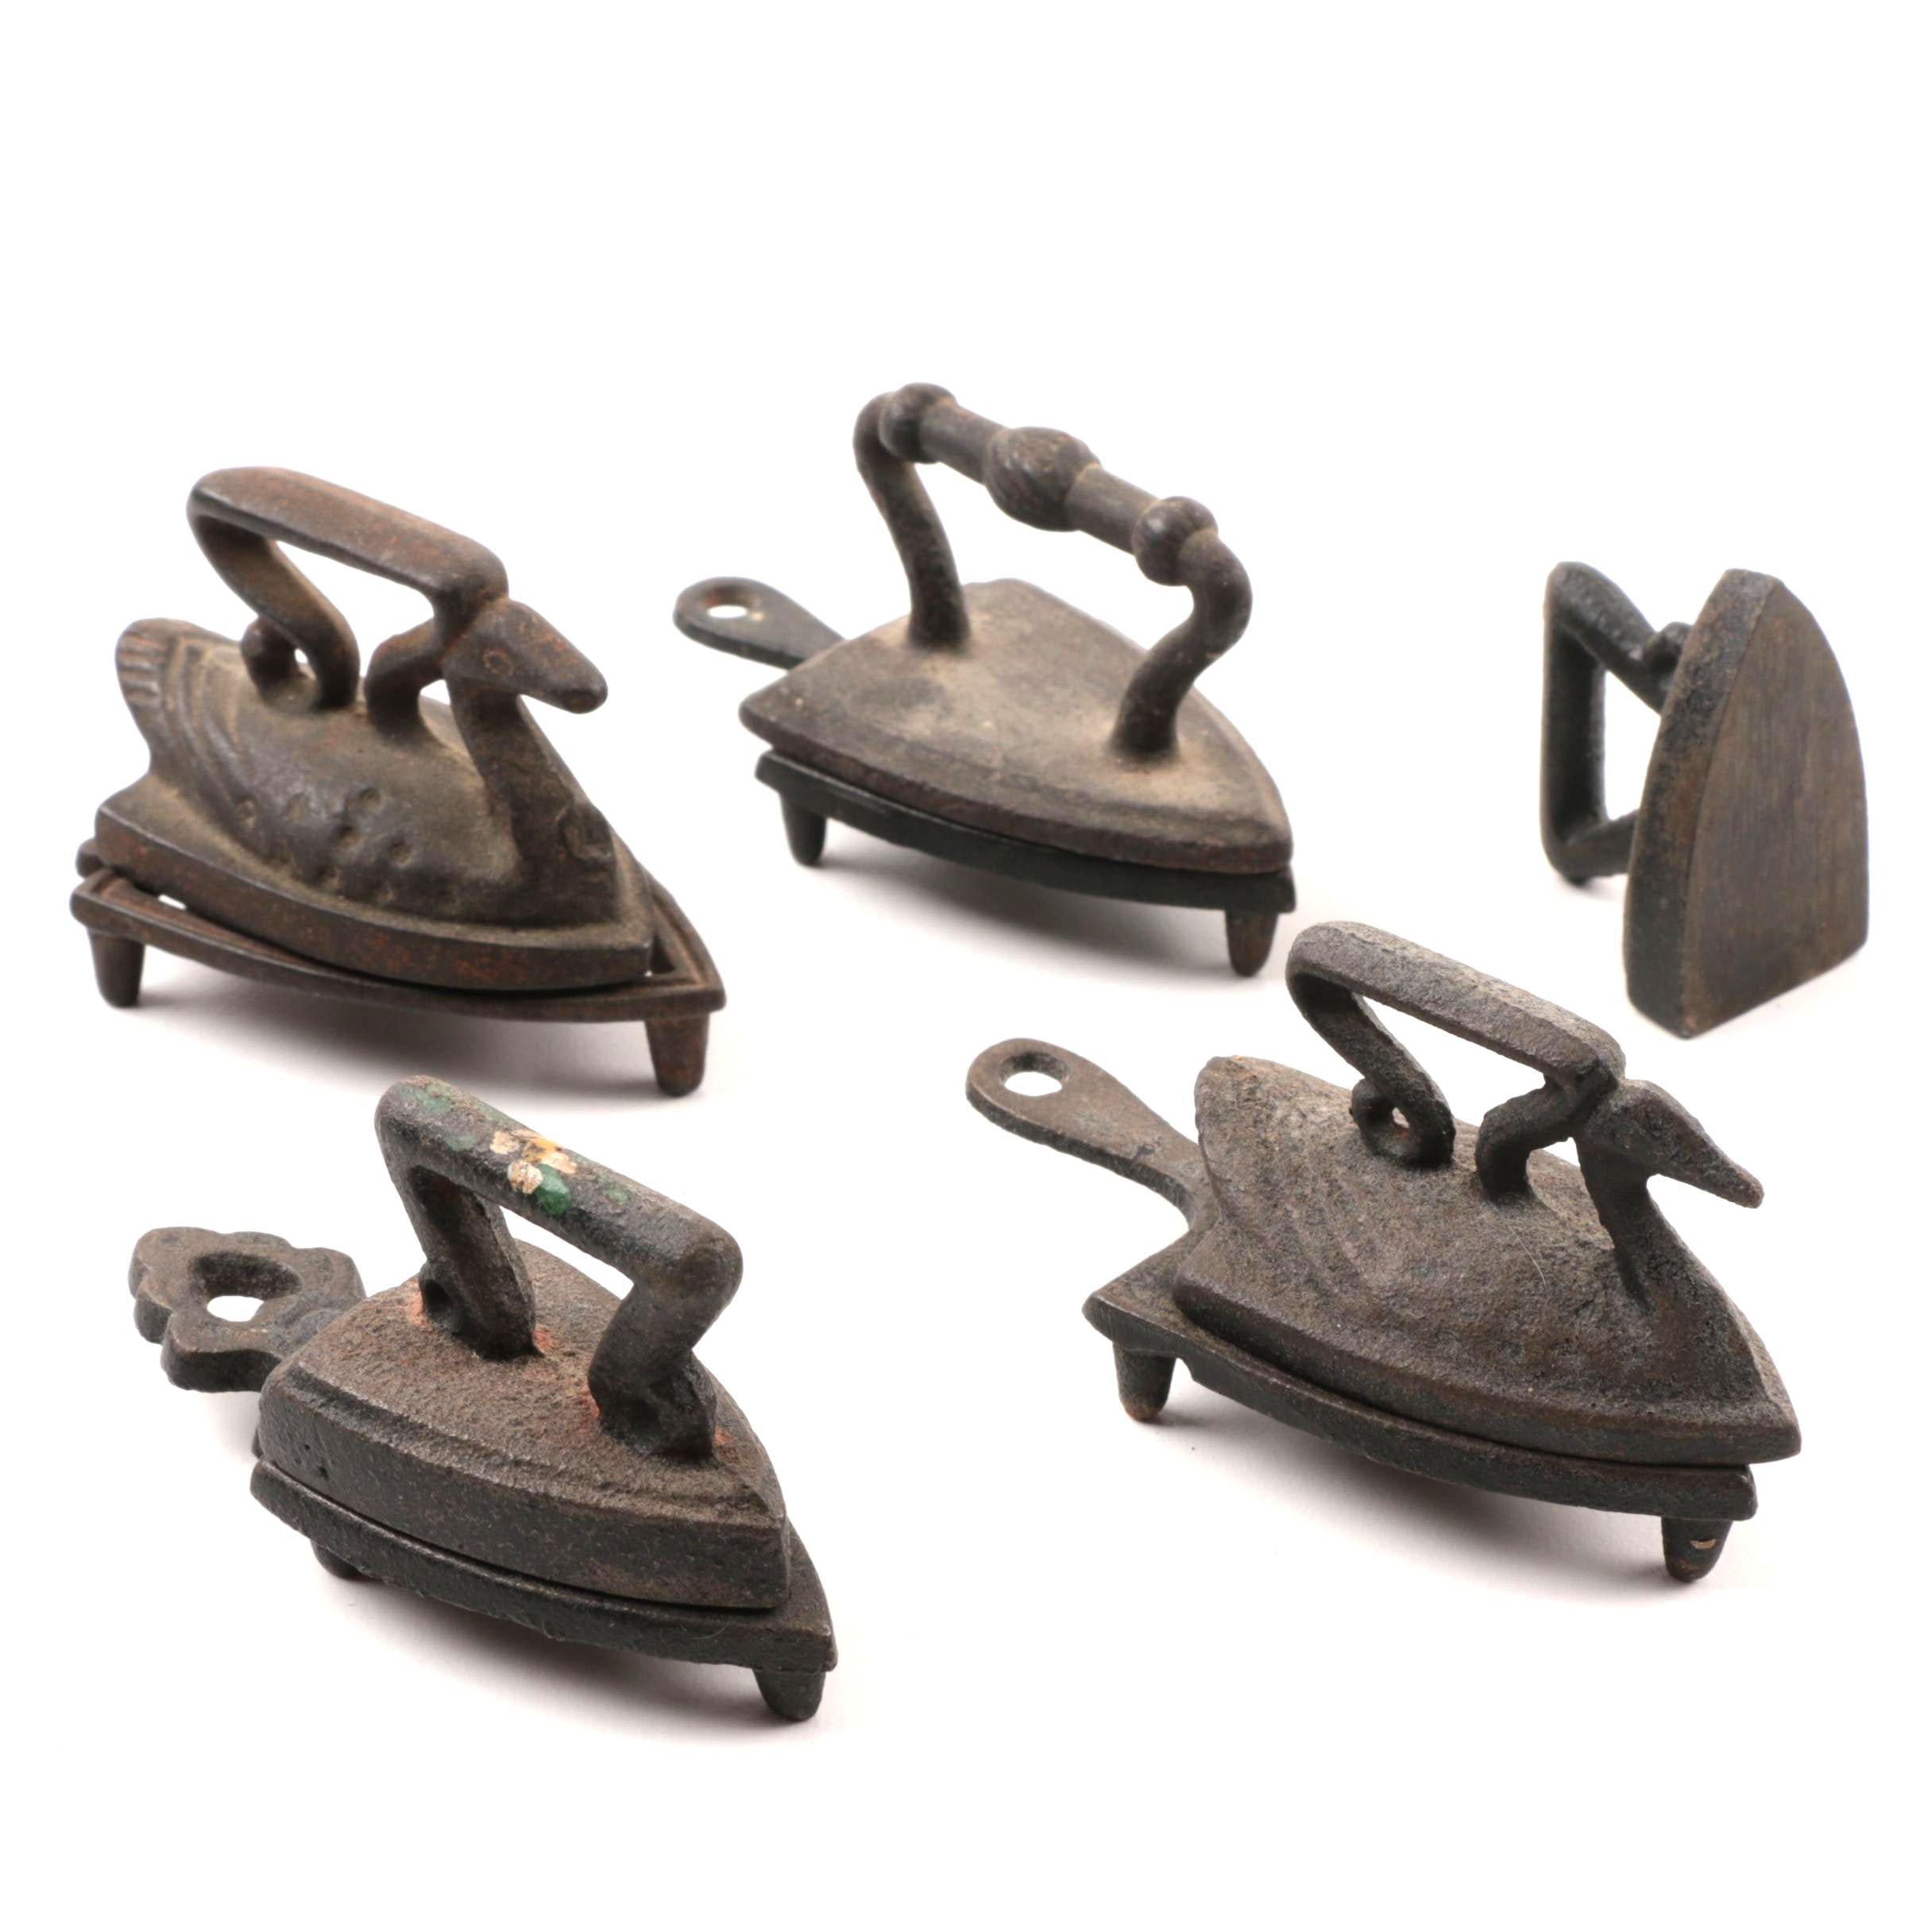 Small Cast Iron Sad Irons And Trivets